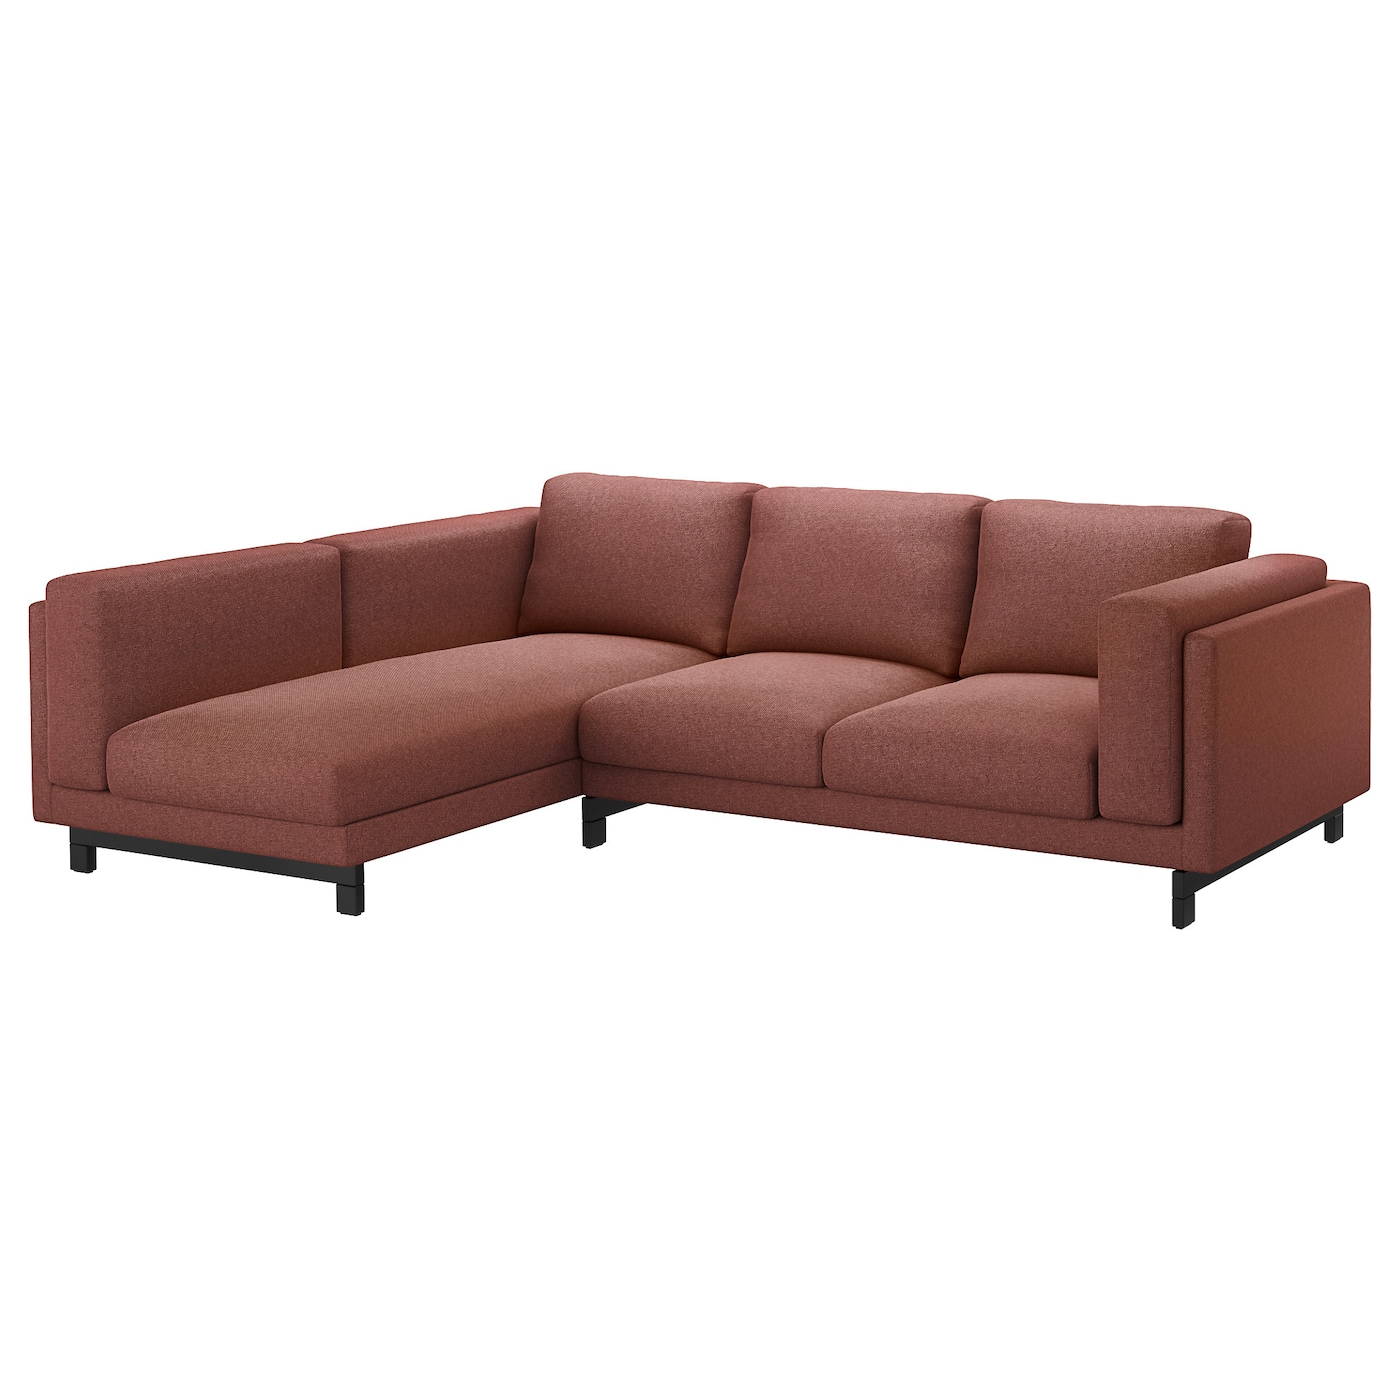 Nockeby two seat sofa w chaise longue left tallmyra rust for Chaise urban ikea